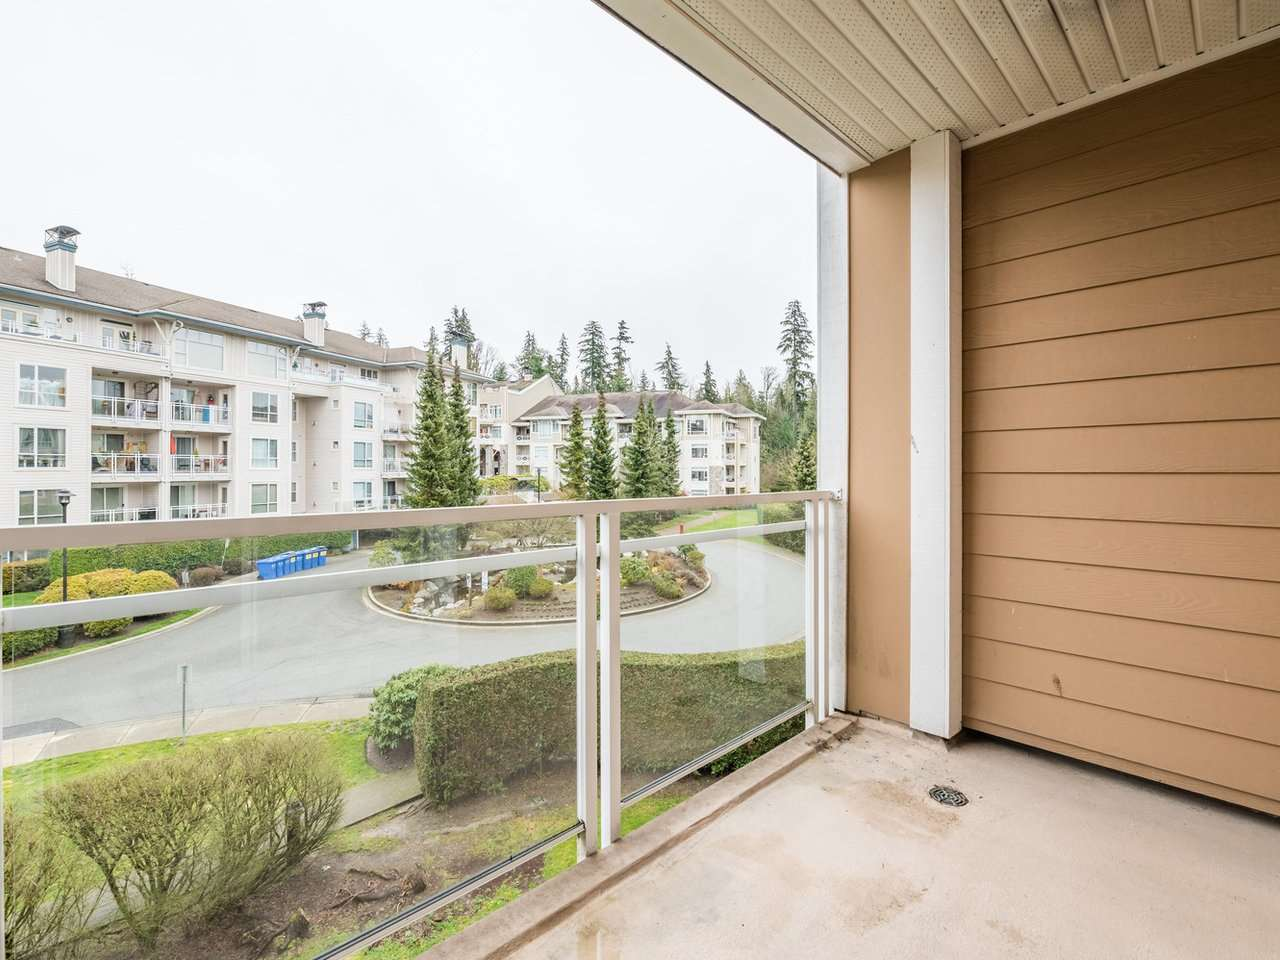 412 3629 DEERCREST DRIVE - Roche Point Apartment/Condo for sale, 1 Bedroom (R2525424) - #31